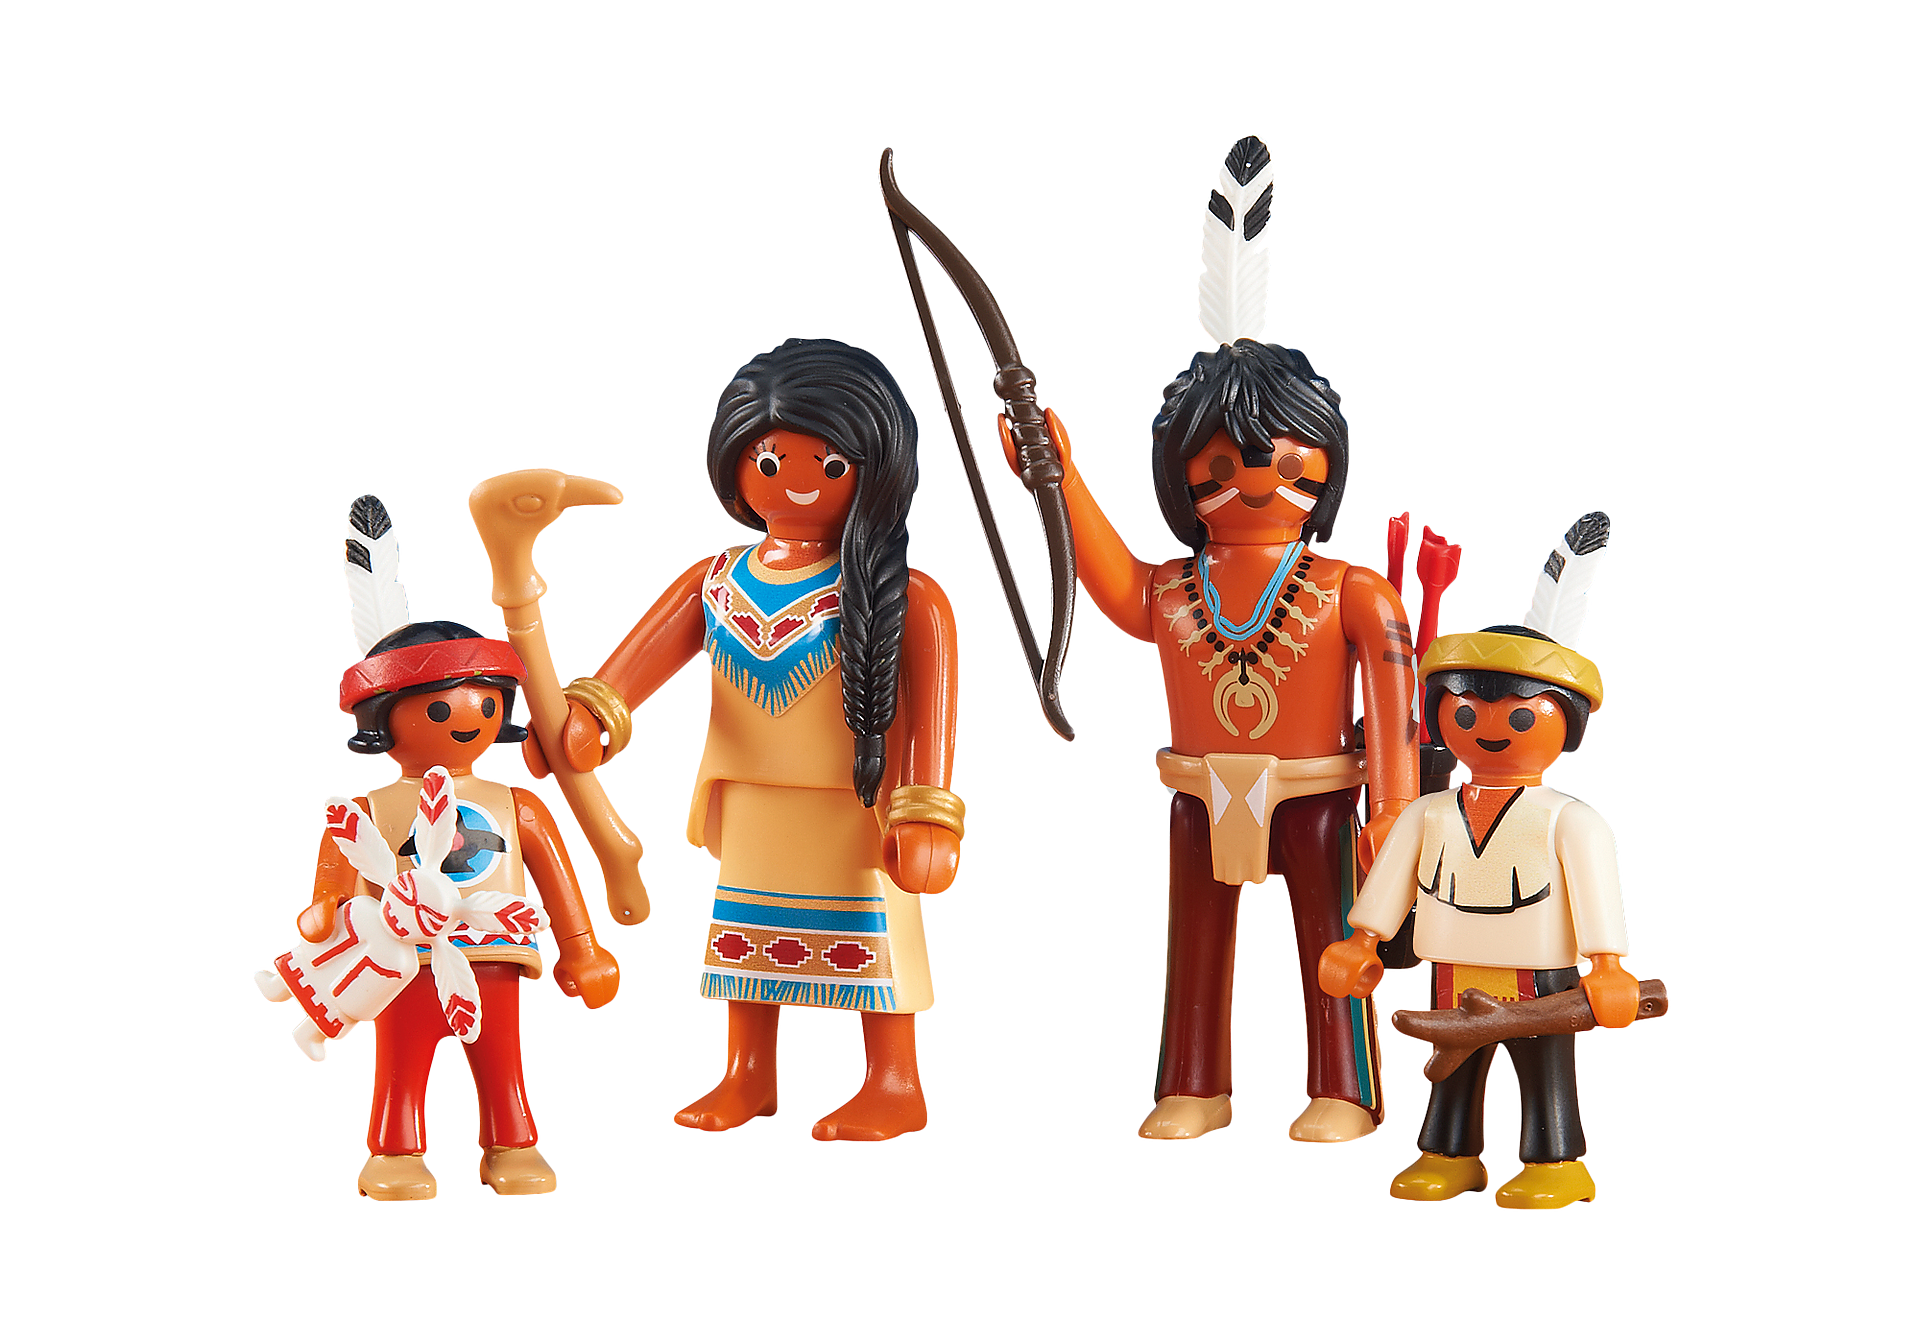 http://media.playmobil.com/i/playmobil/6322_product_detail/Native American Family II